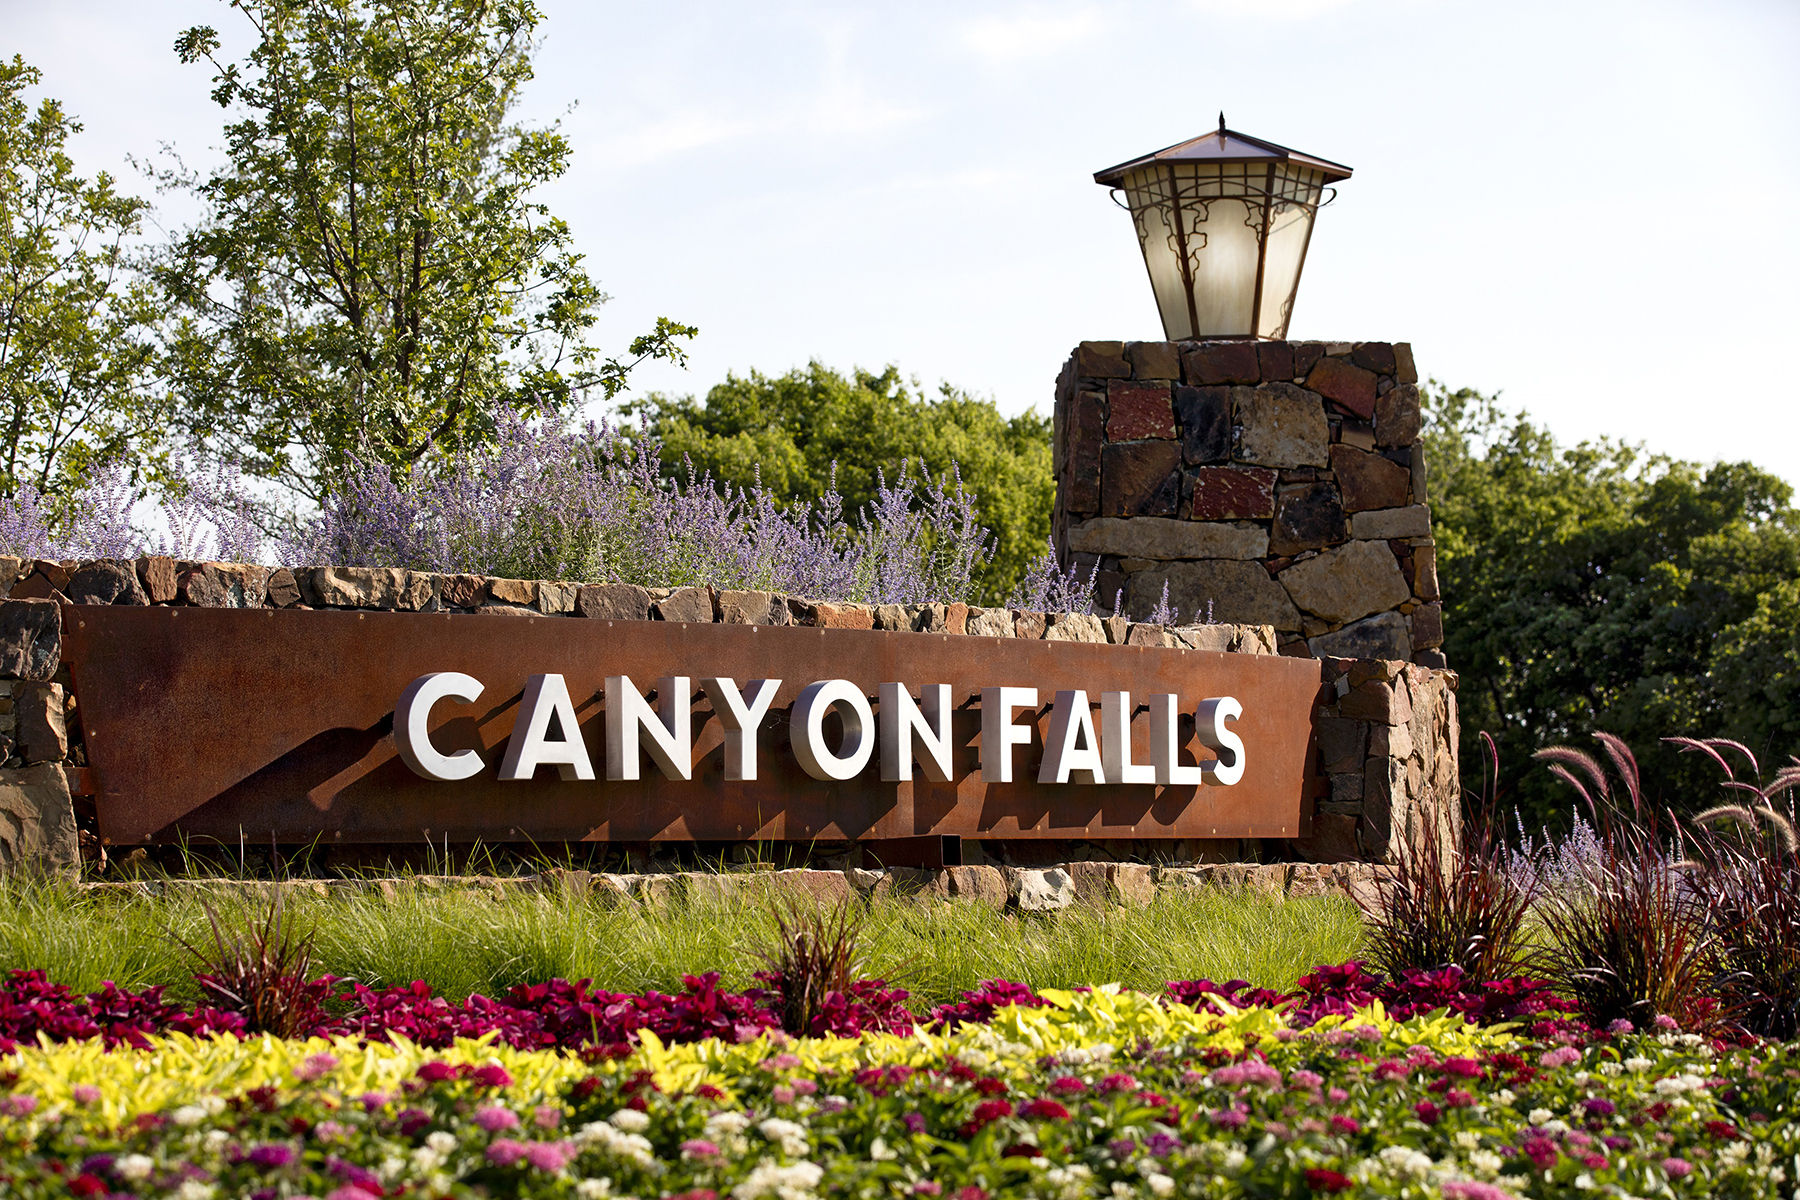 Canyon Falls Entrance